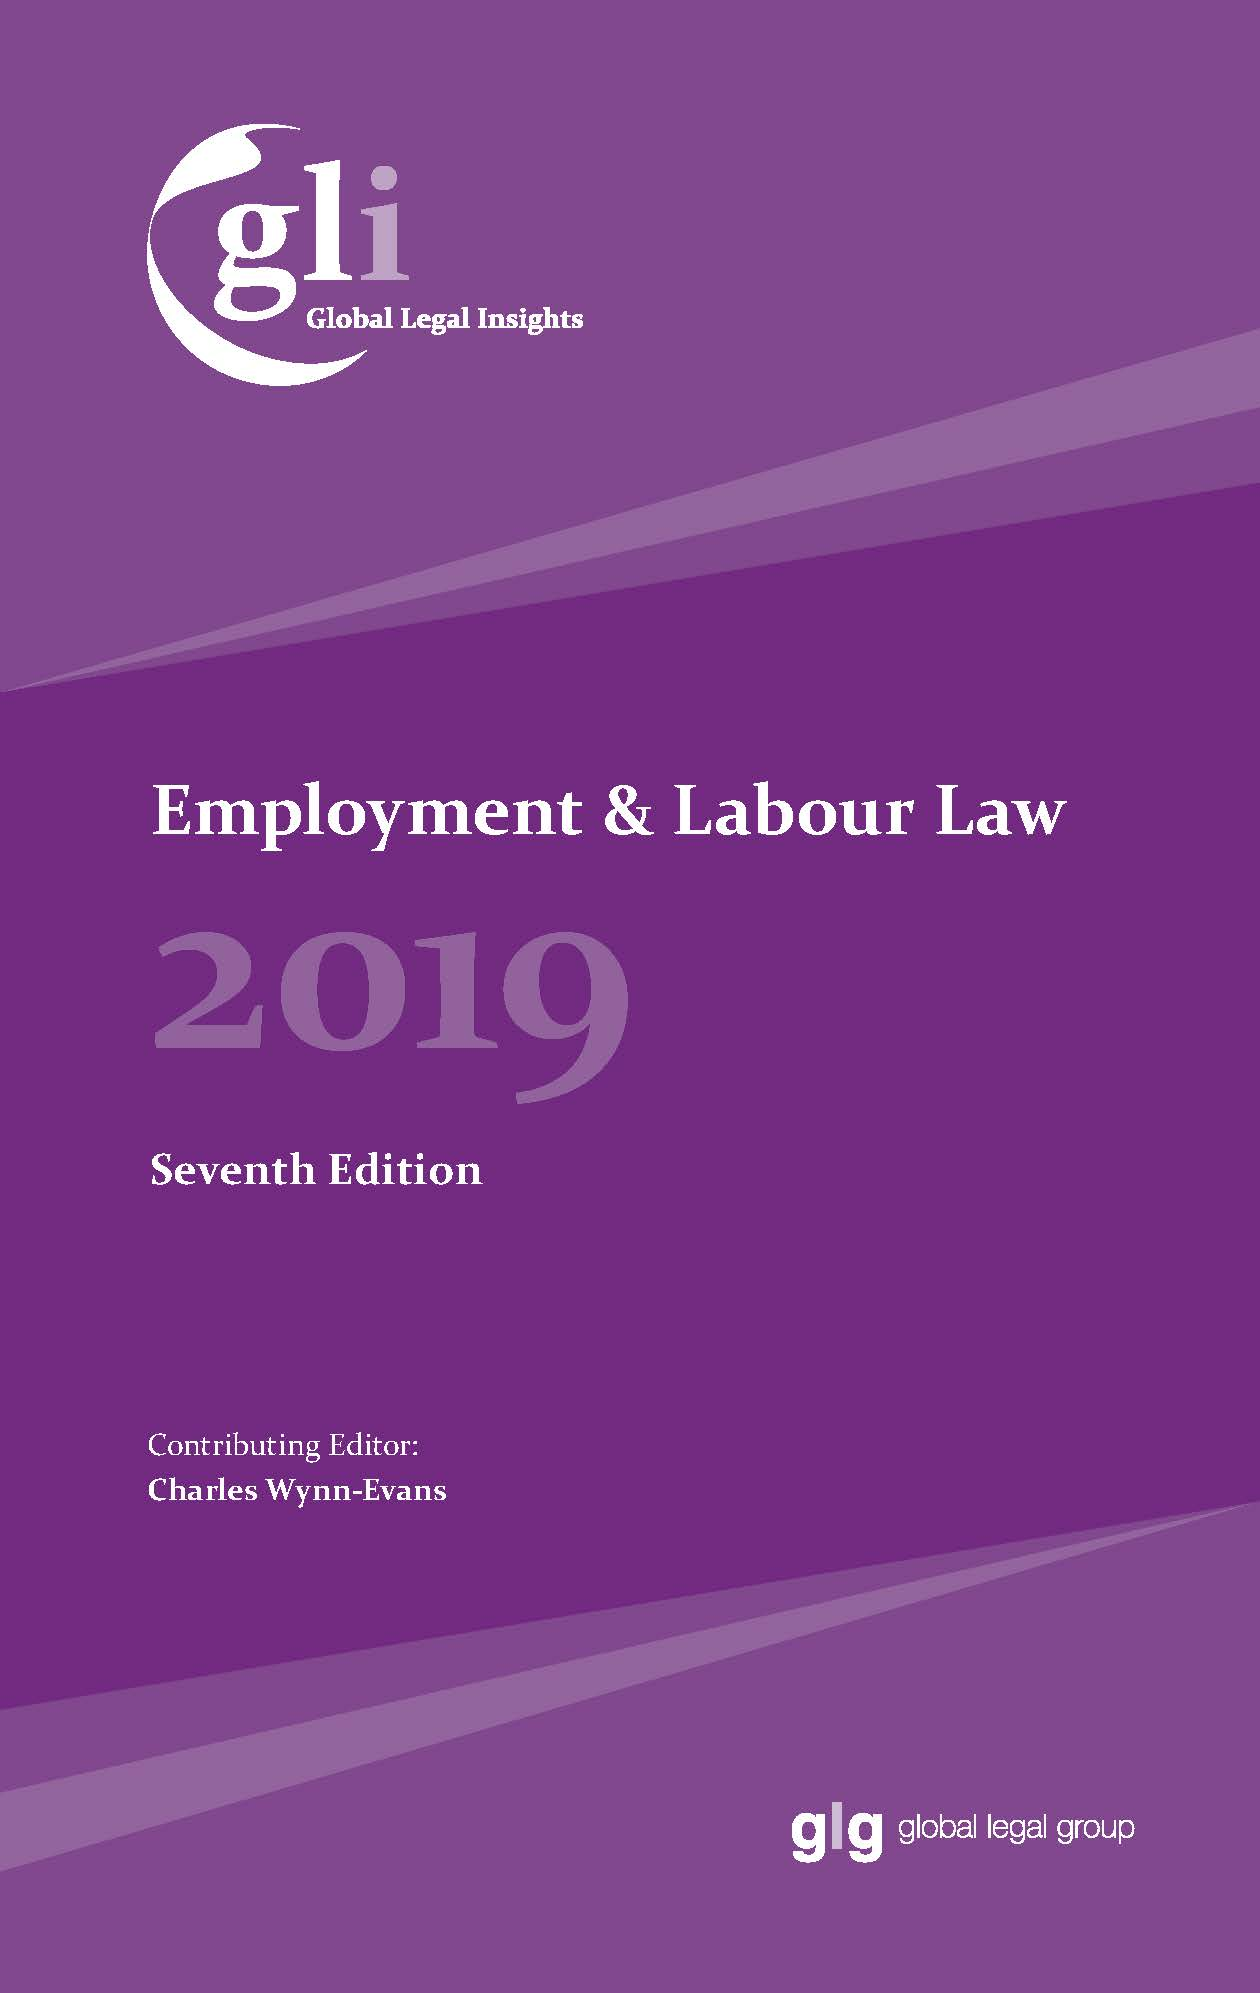 Global Legal Insights – Employment & Labour Law 2019 7th Edition